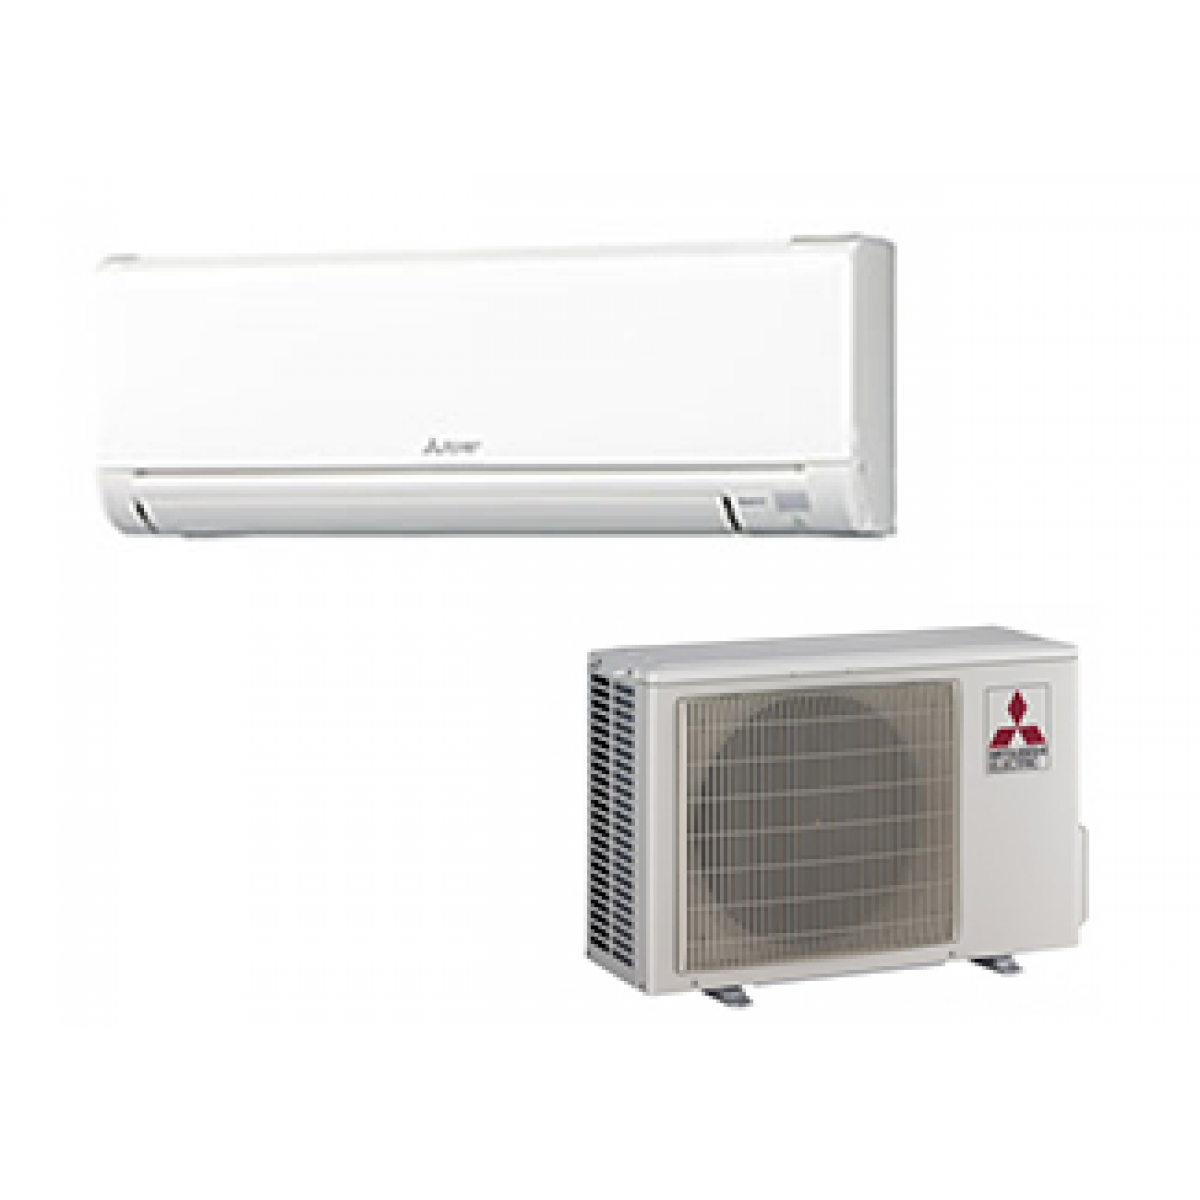 20.5 SEER Cooling Only System in Mitsubishi Ductless Air Conditioners  #762635